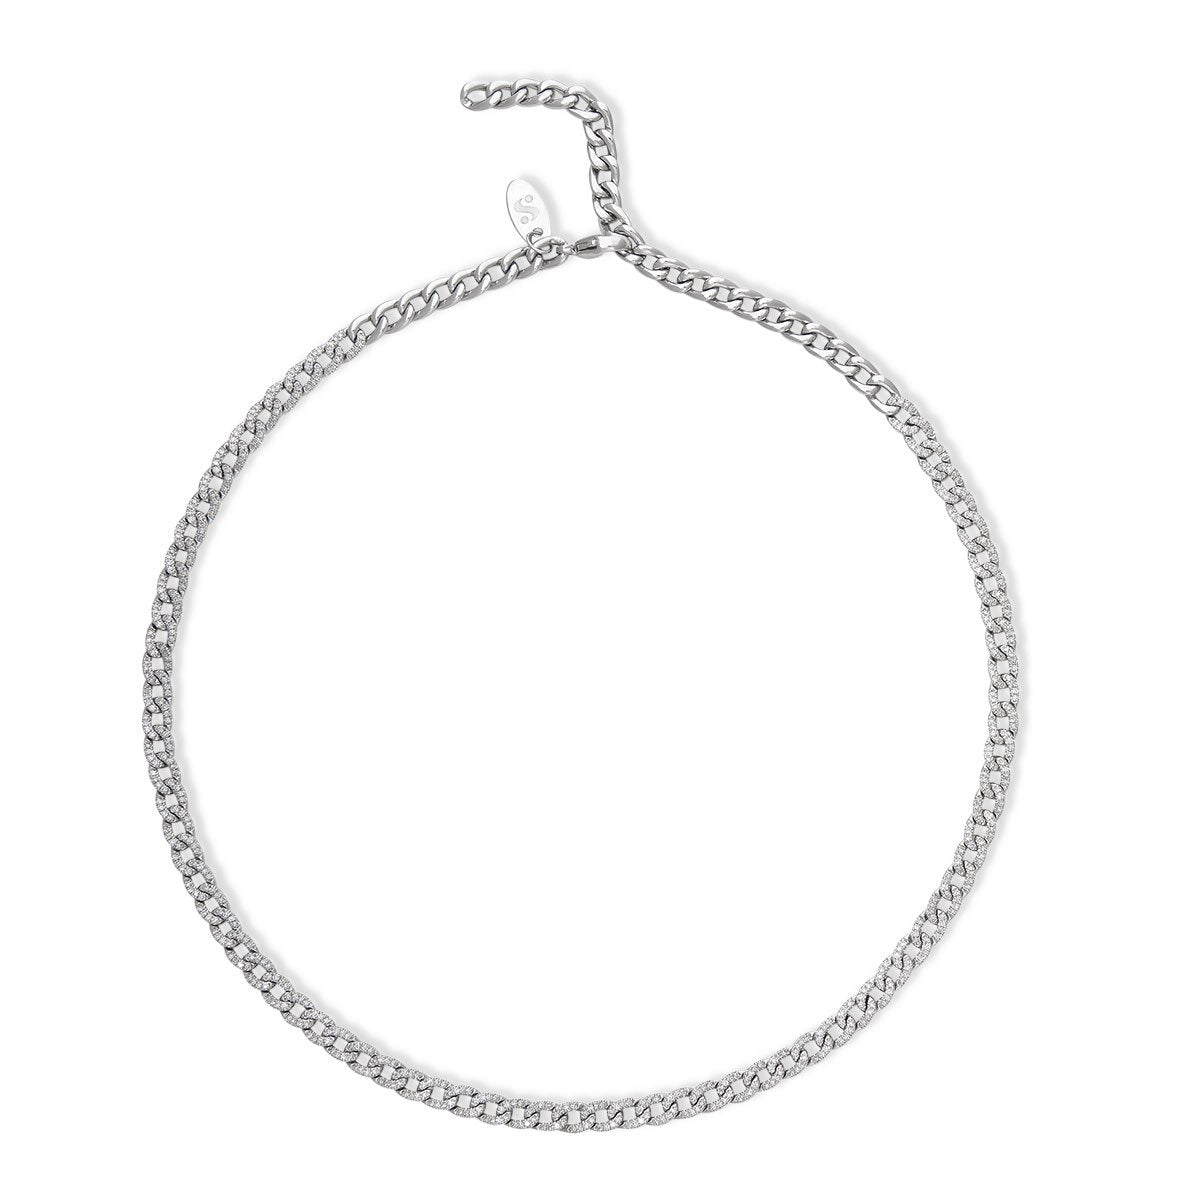 Cuban Link Necklace - Serena Williams Jewelry